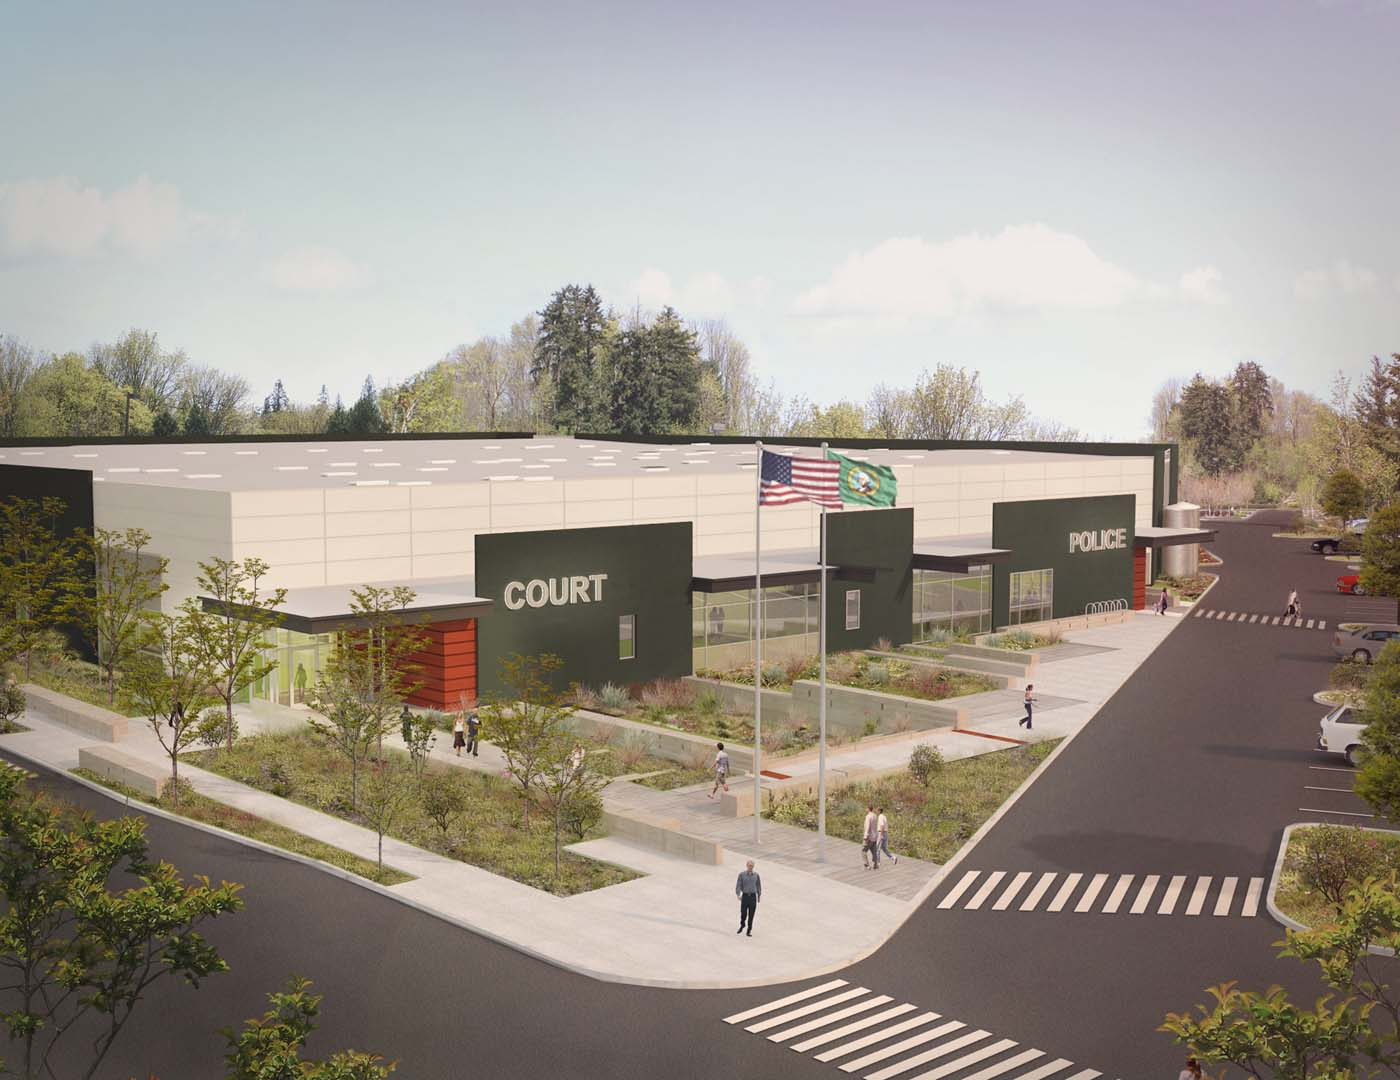 Seattle DJCcom local business news and data  Real Estate  Kirkland big box store will be